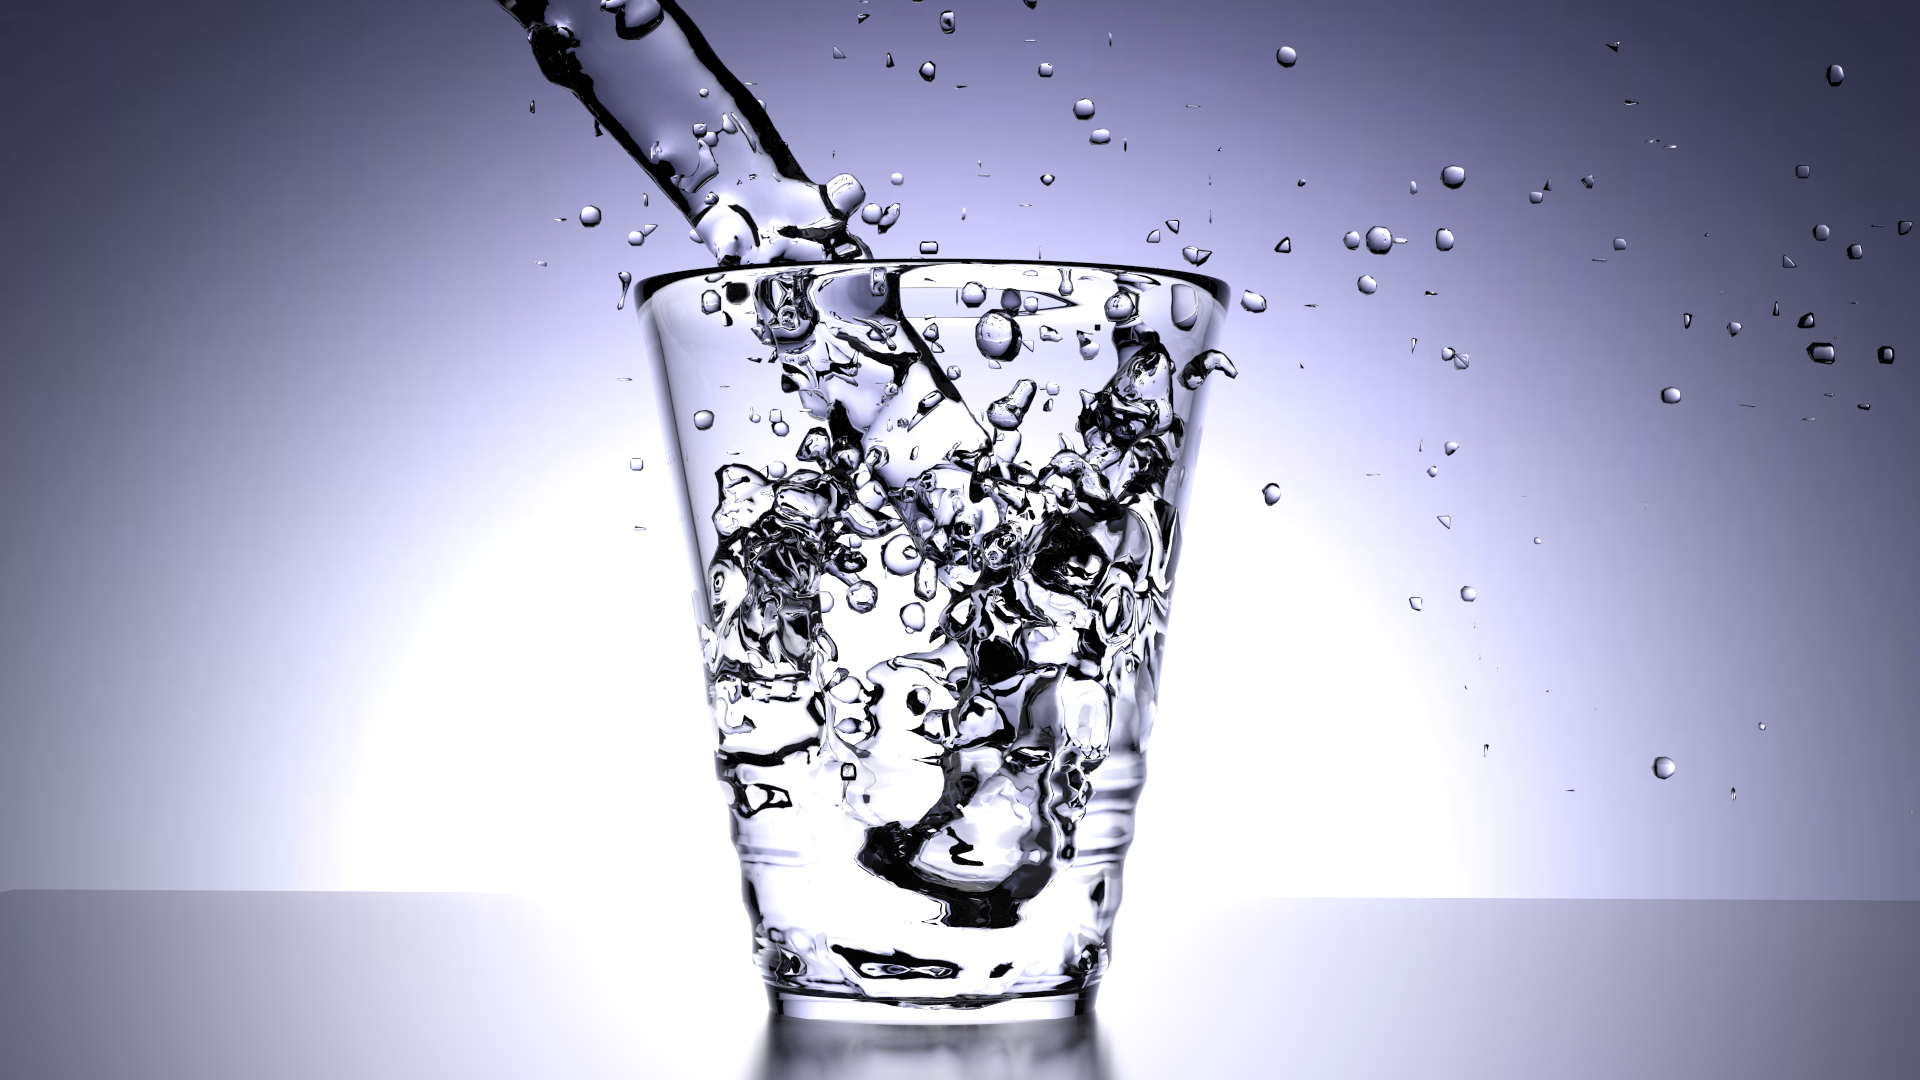 The final rendered image of water puring into a glass